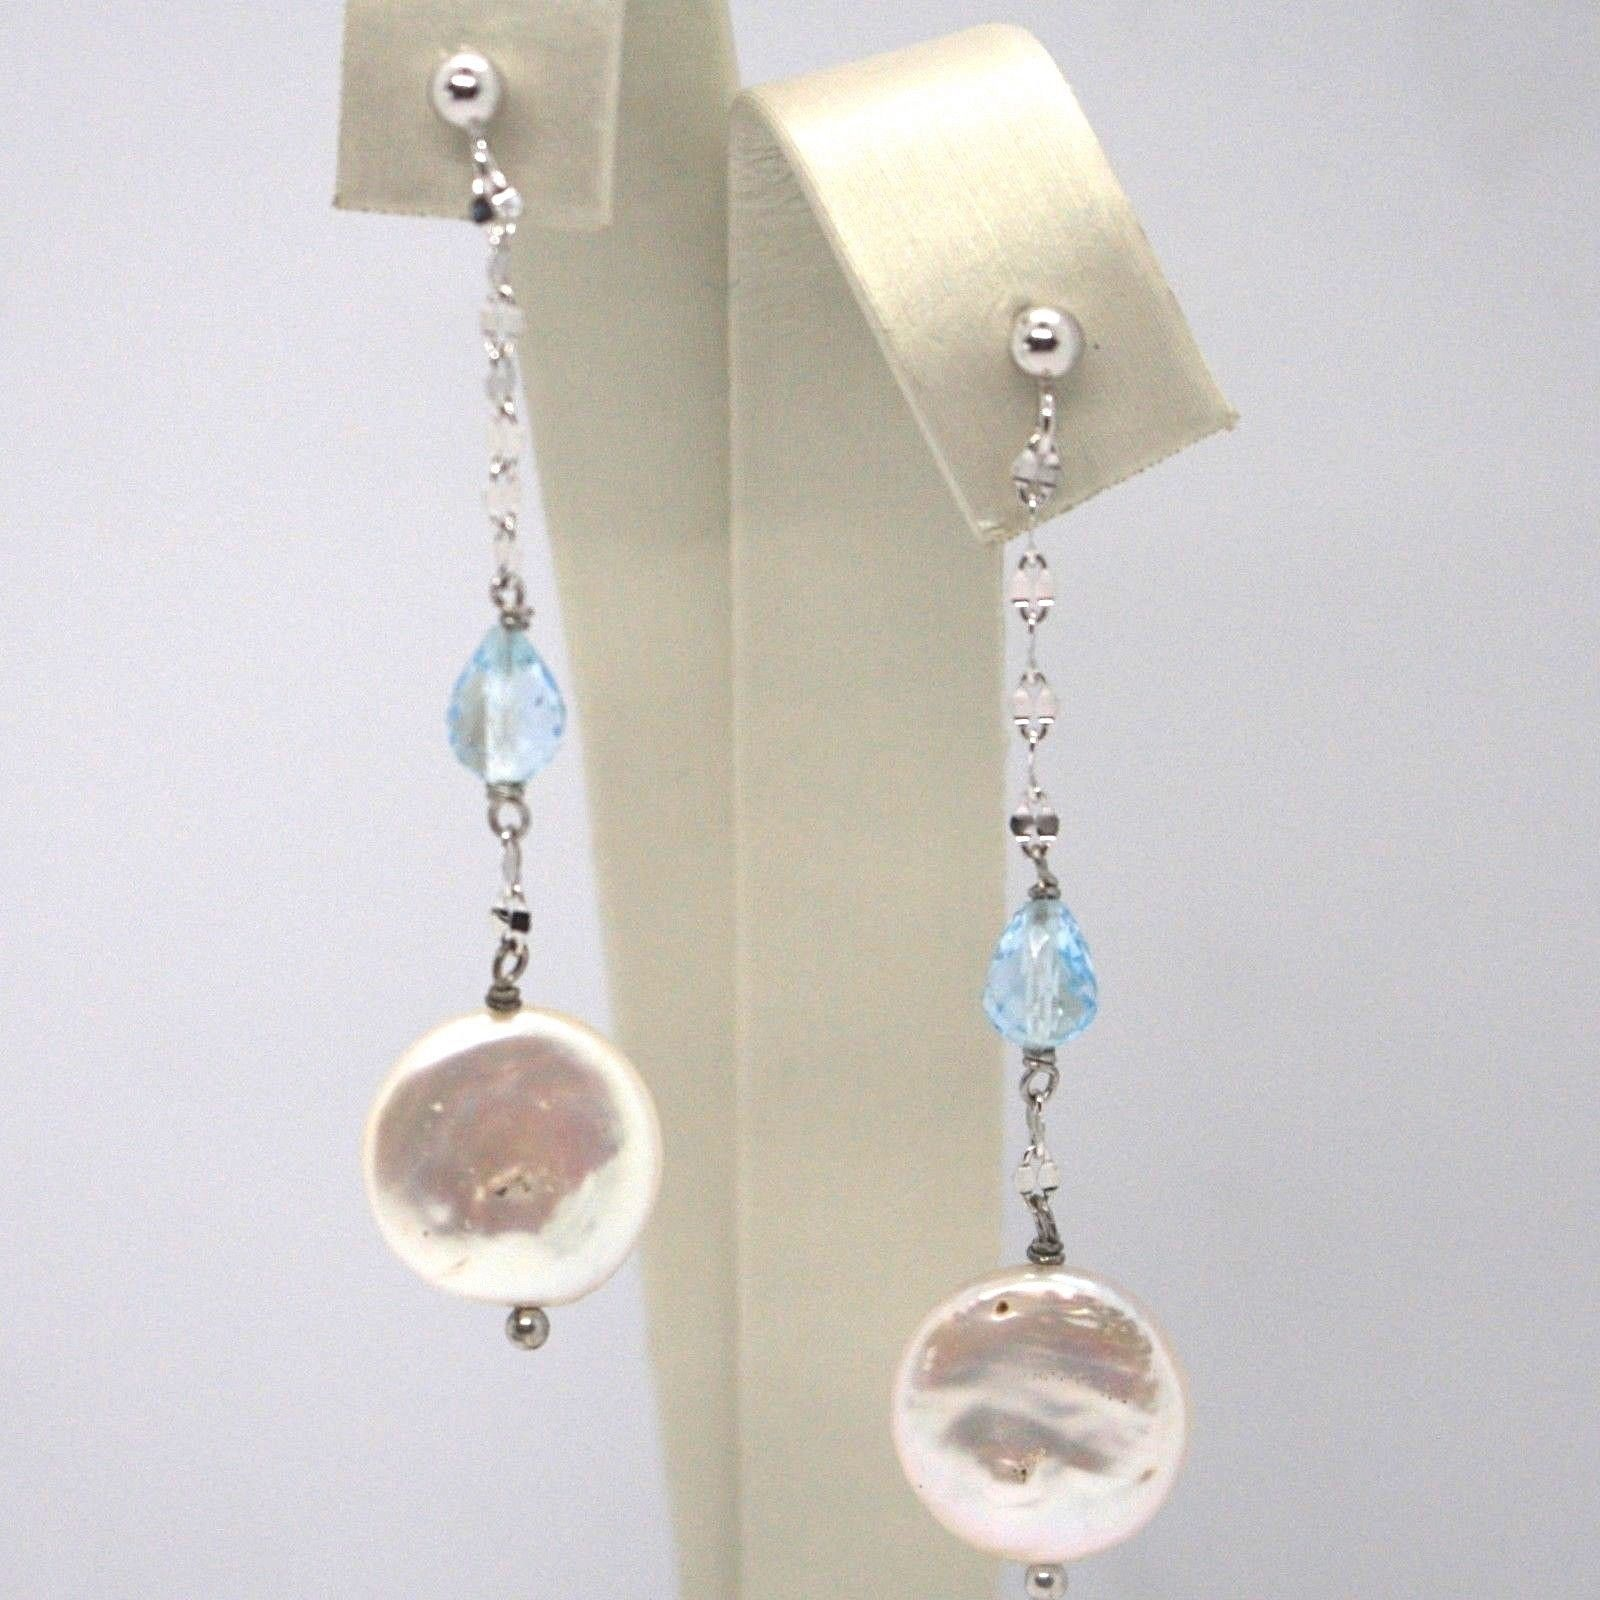 Drop earrings 18k White Gold, Topaz Blue Drop, madrepela disk